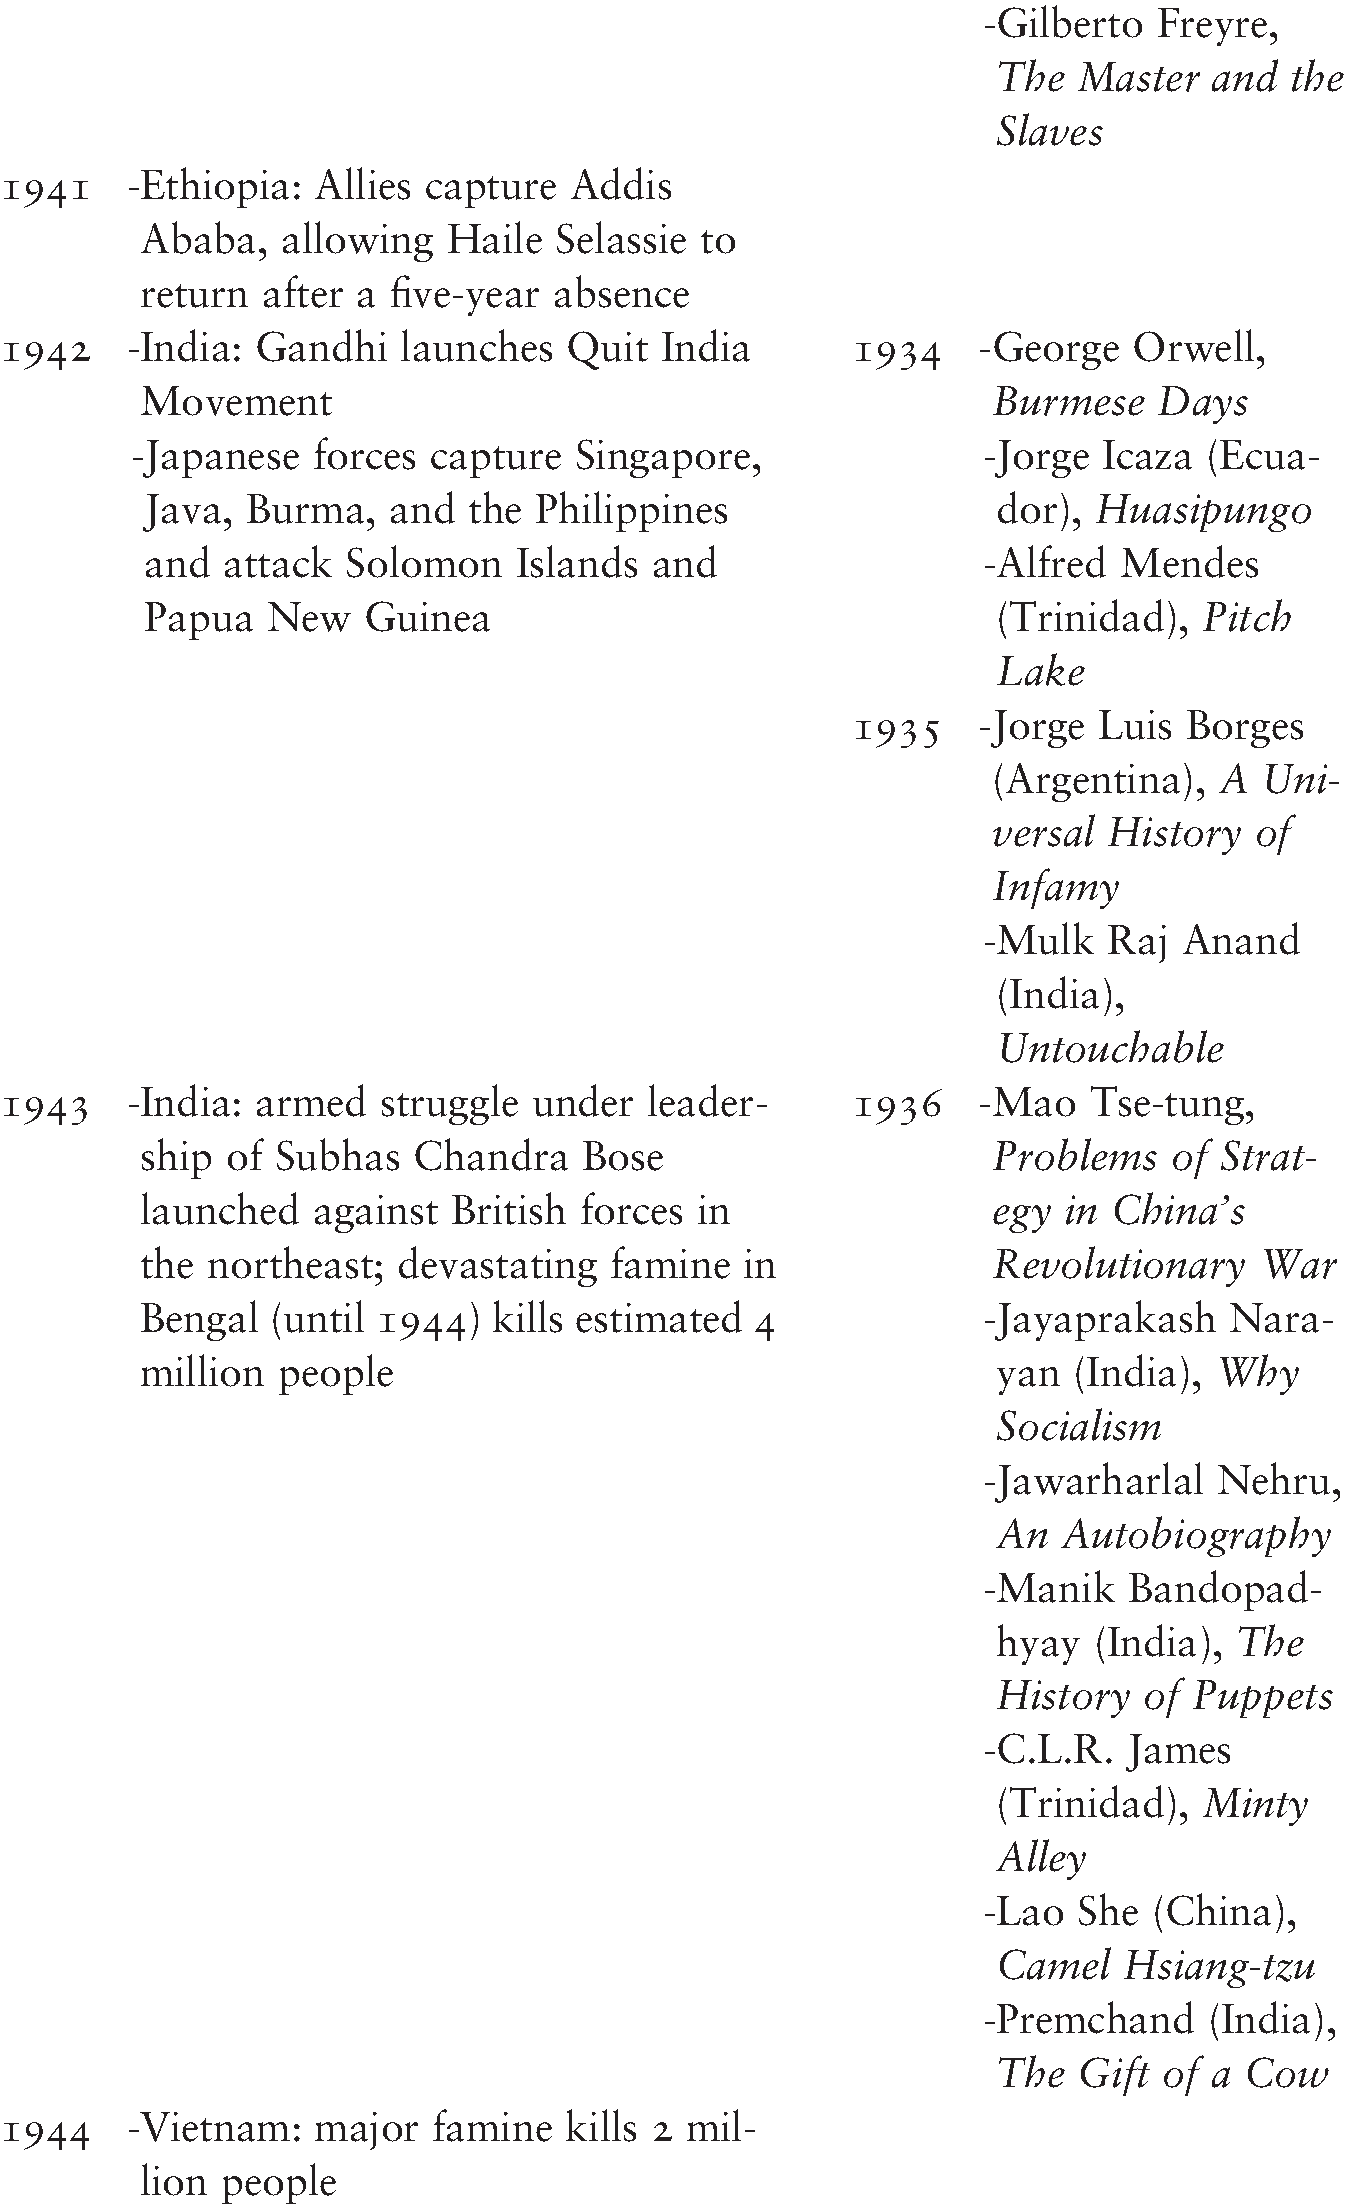 Chronology of Political and Literary Events - The Cambridge